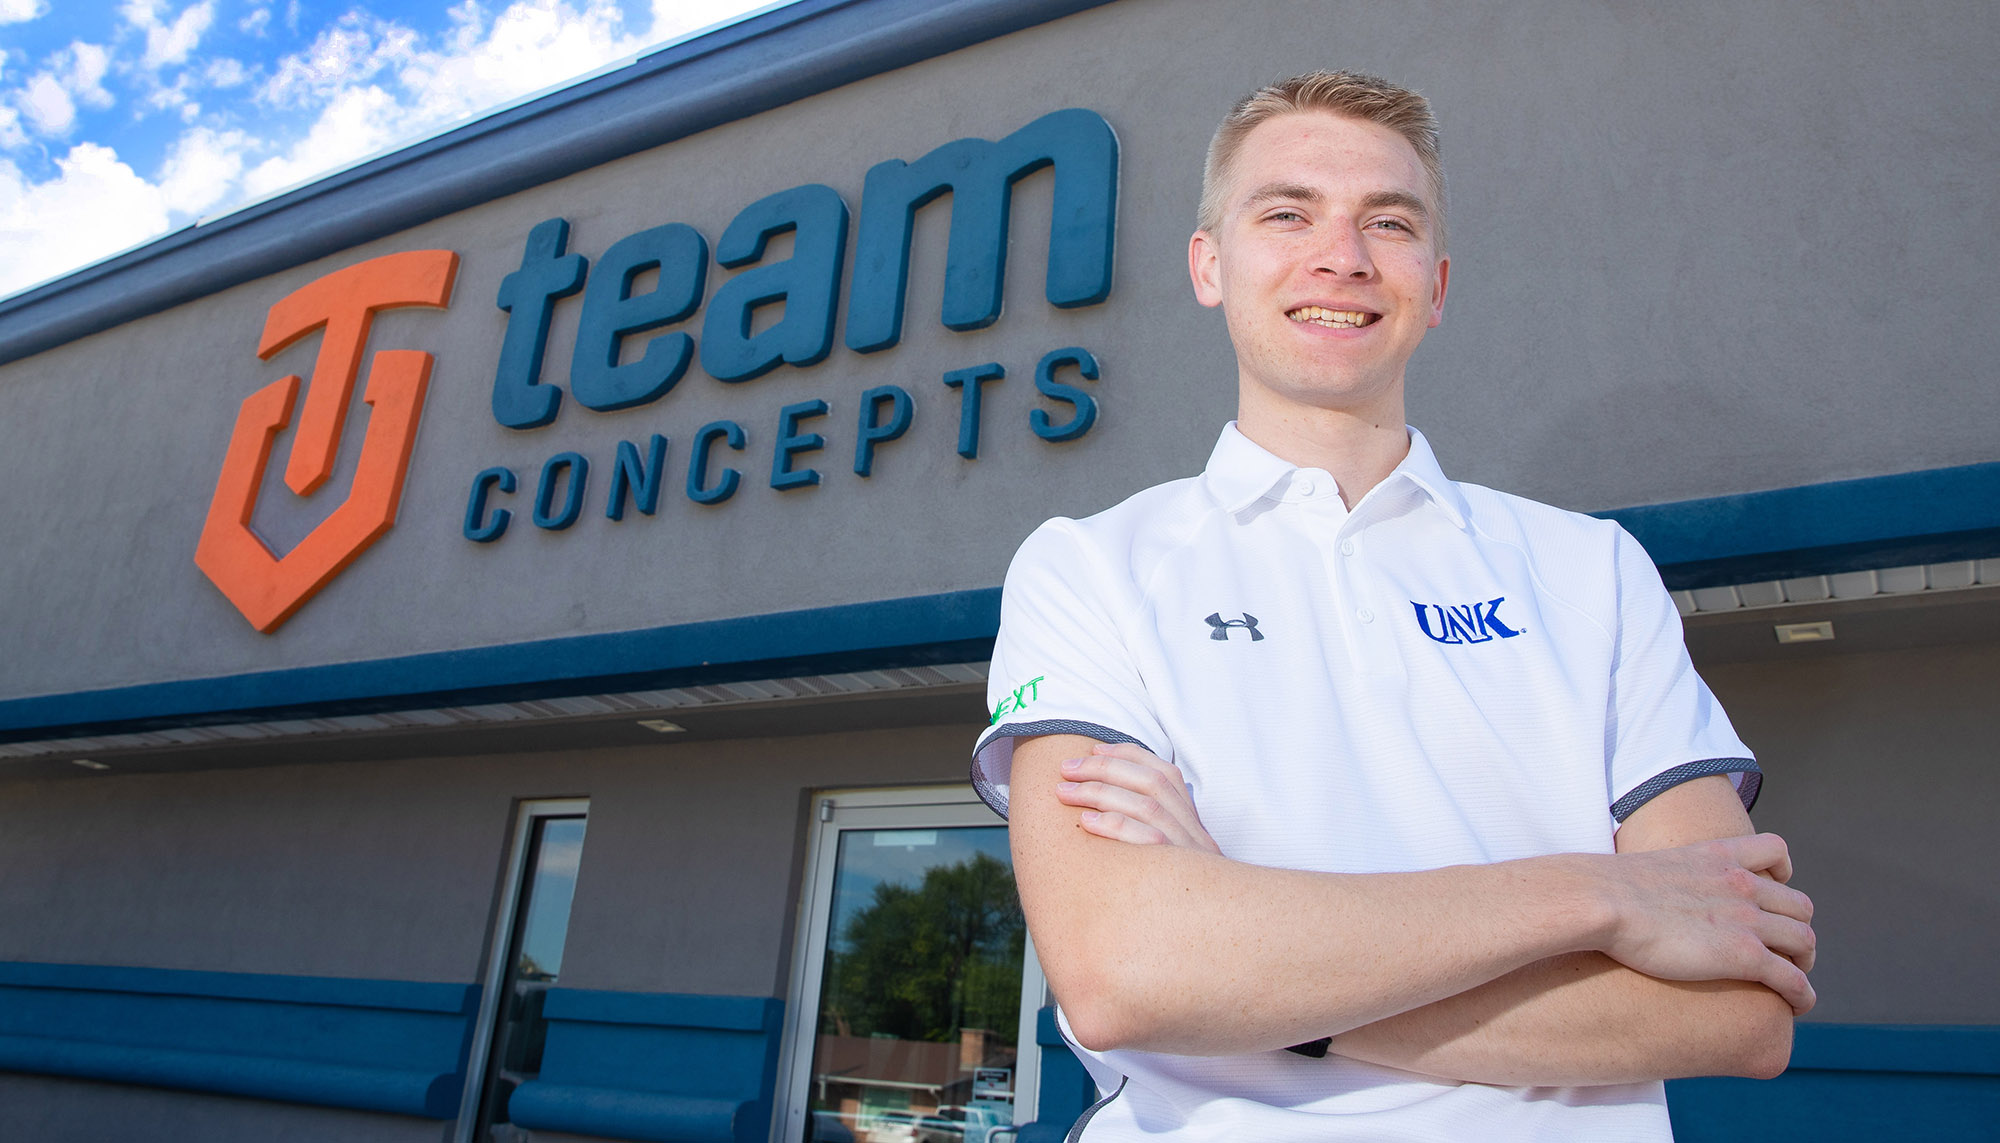 UNK student Jacob Nutter works as a part-time marketing director for Team Concepts in Kearney. He landed the job after connecting with Team Concepts owner Josh Erickson through NEXT, a business leadership program organized by UNK's College of Business and Technology and Kearney Area Chamber of Commerce. (Photo by Corbey R. Dorsey, UNK Communications)